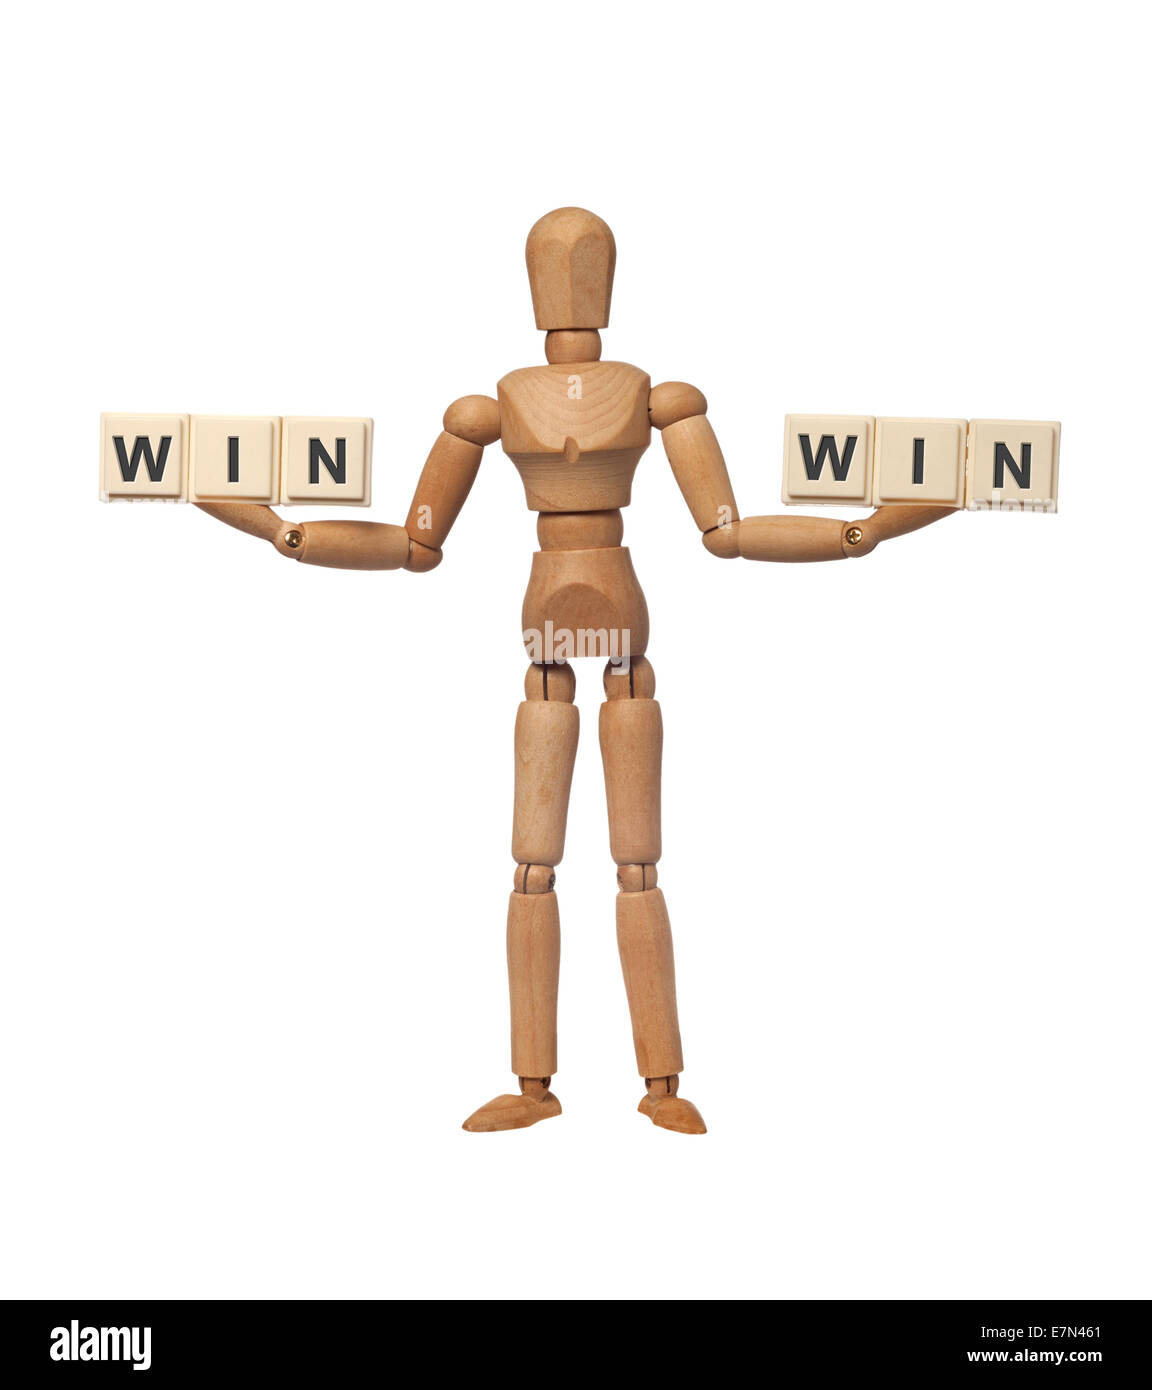 Figurine with the word WIN on both hands depicting a win-win situation - Stock Image